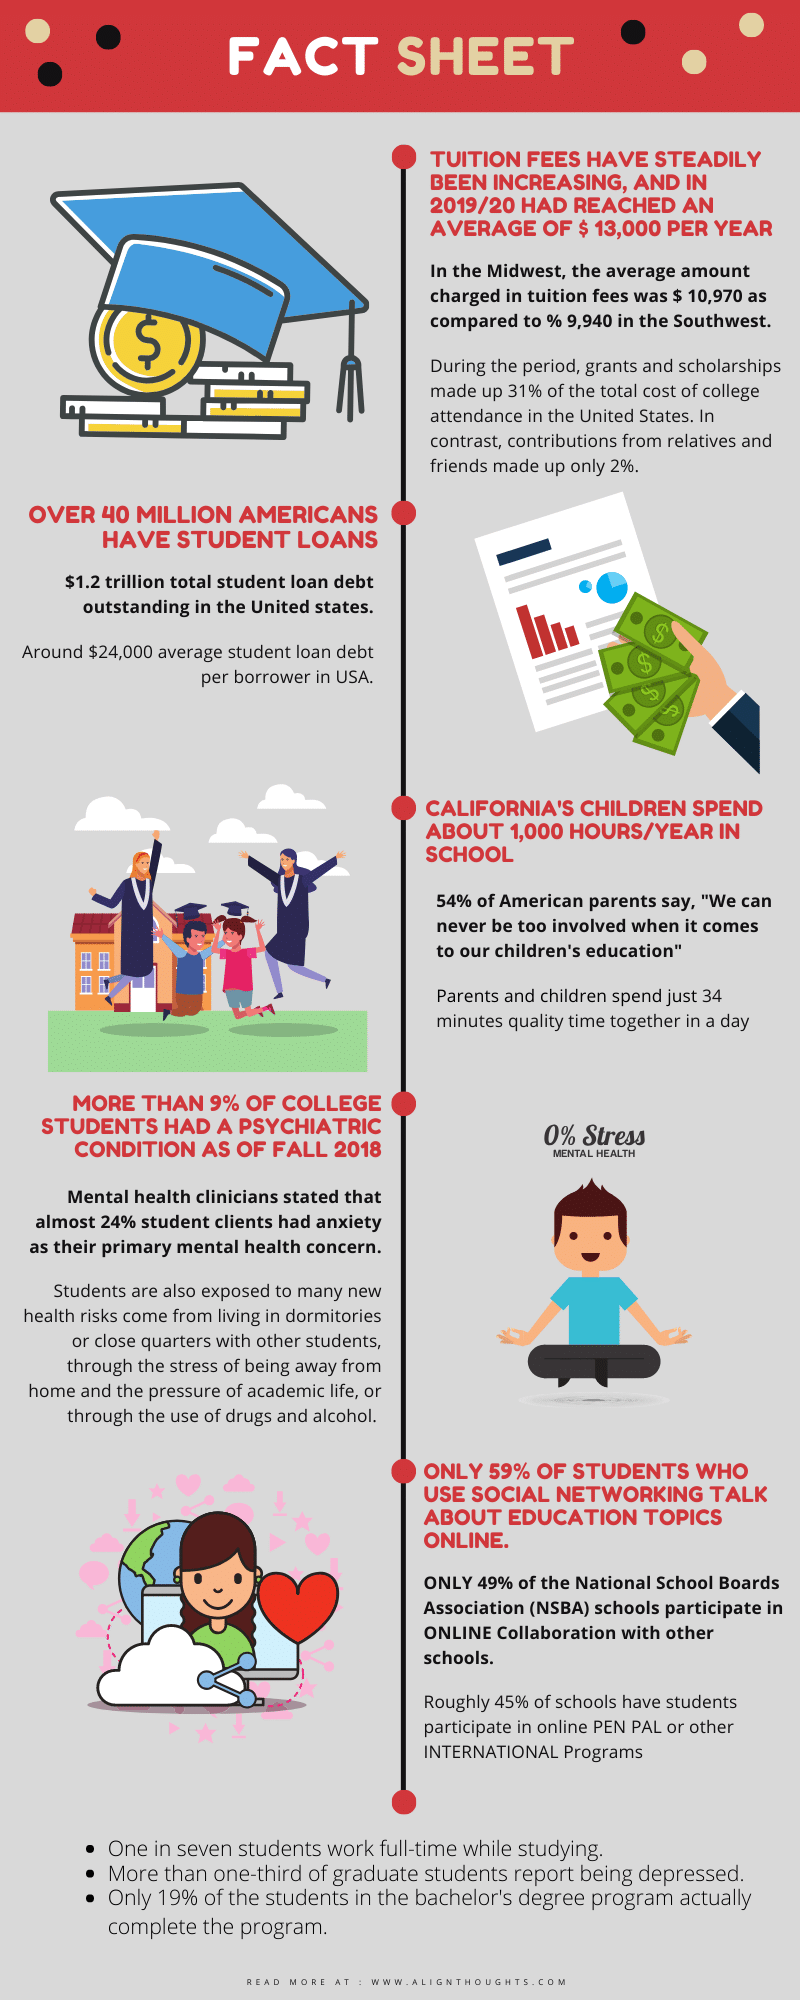 Challenges and problems of students-infographic-alignthoughts